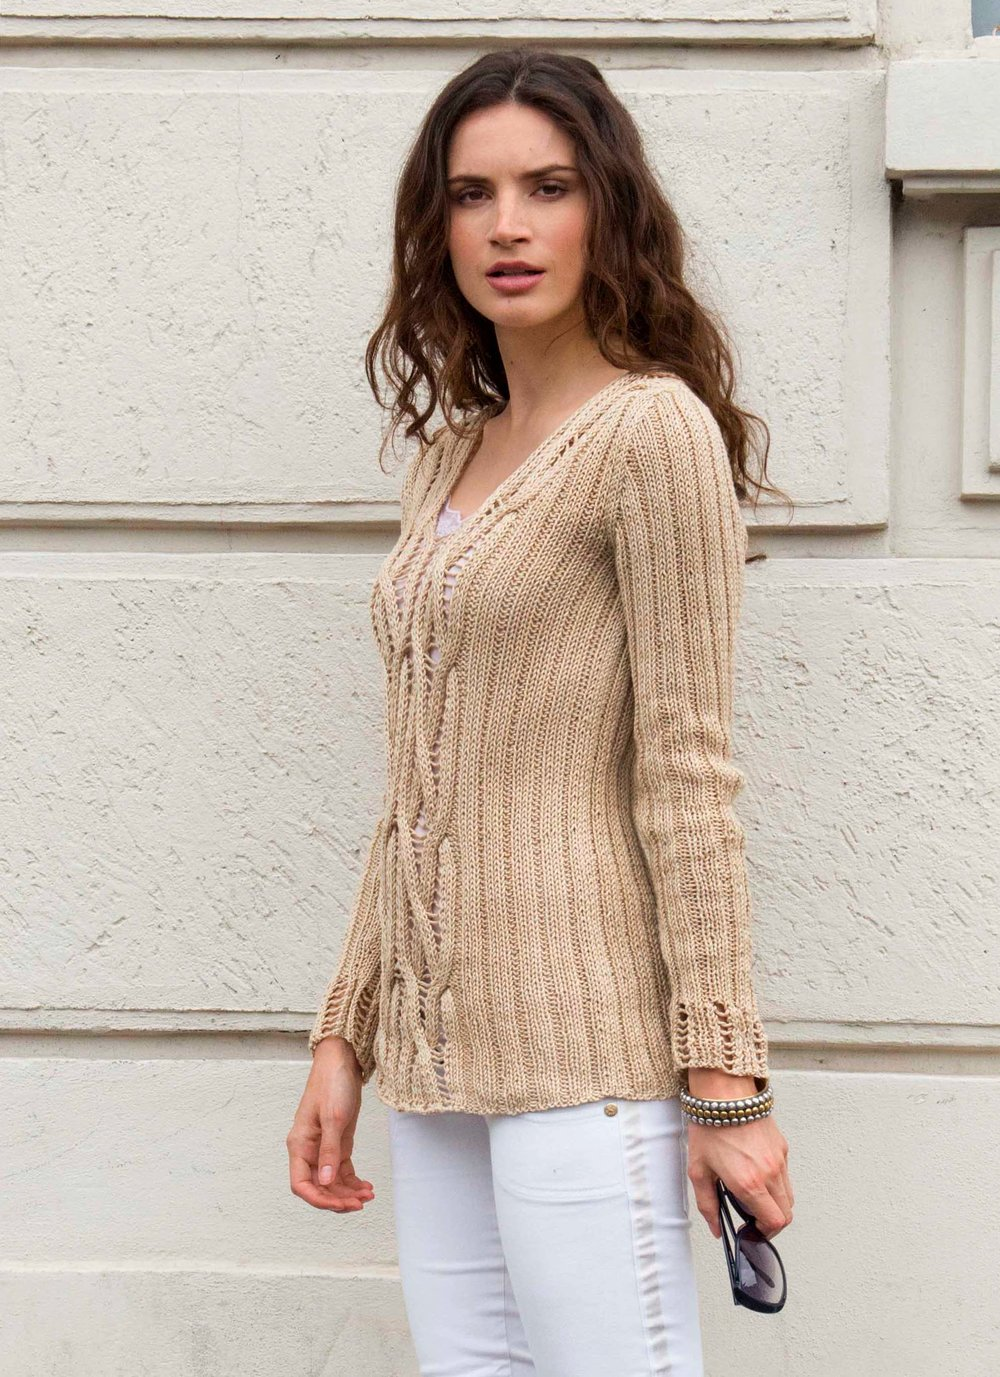 Giuliano&GiusyMarelli_Pull Onde di sabbia_Side_Knit 'd' Crochet Collection_.jpg